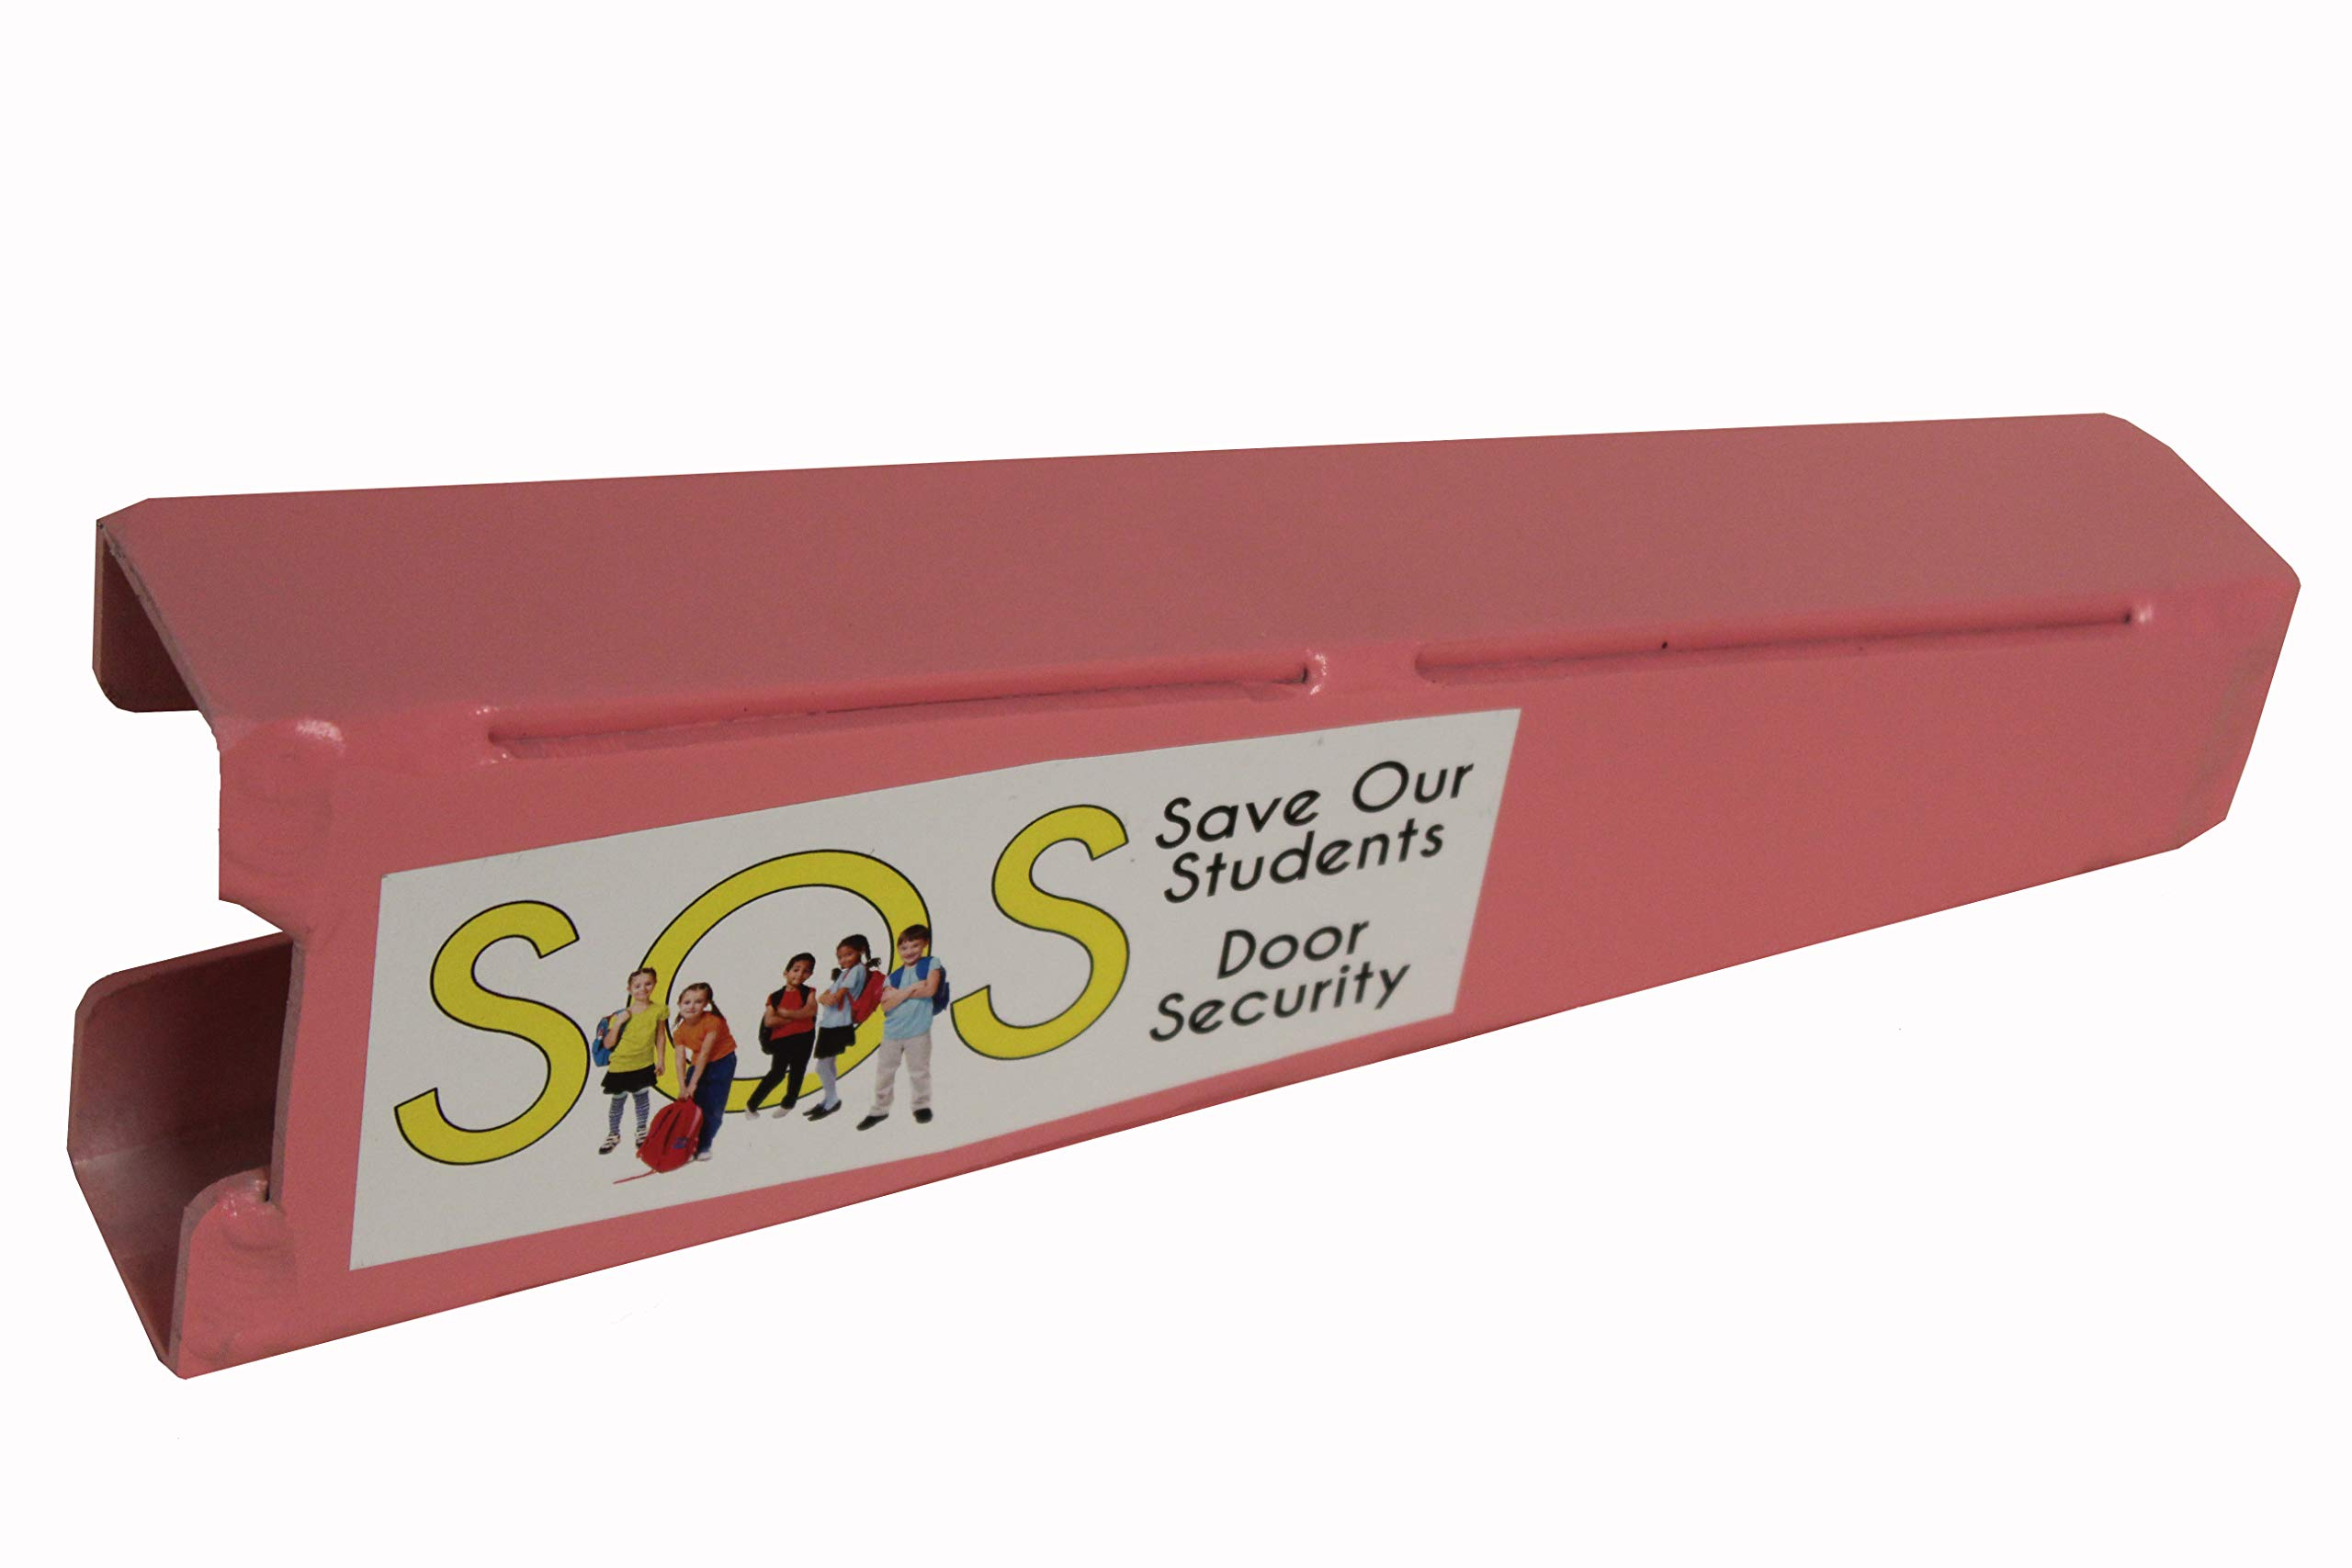 Classroom Door Safety - Model 1 (Pink)